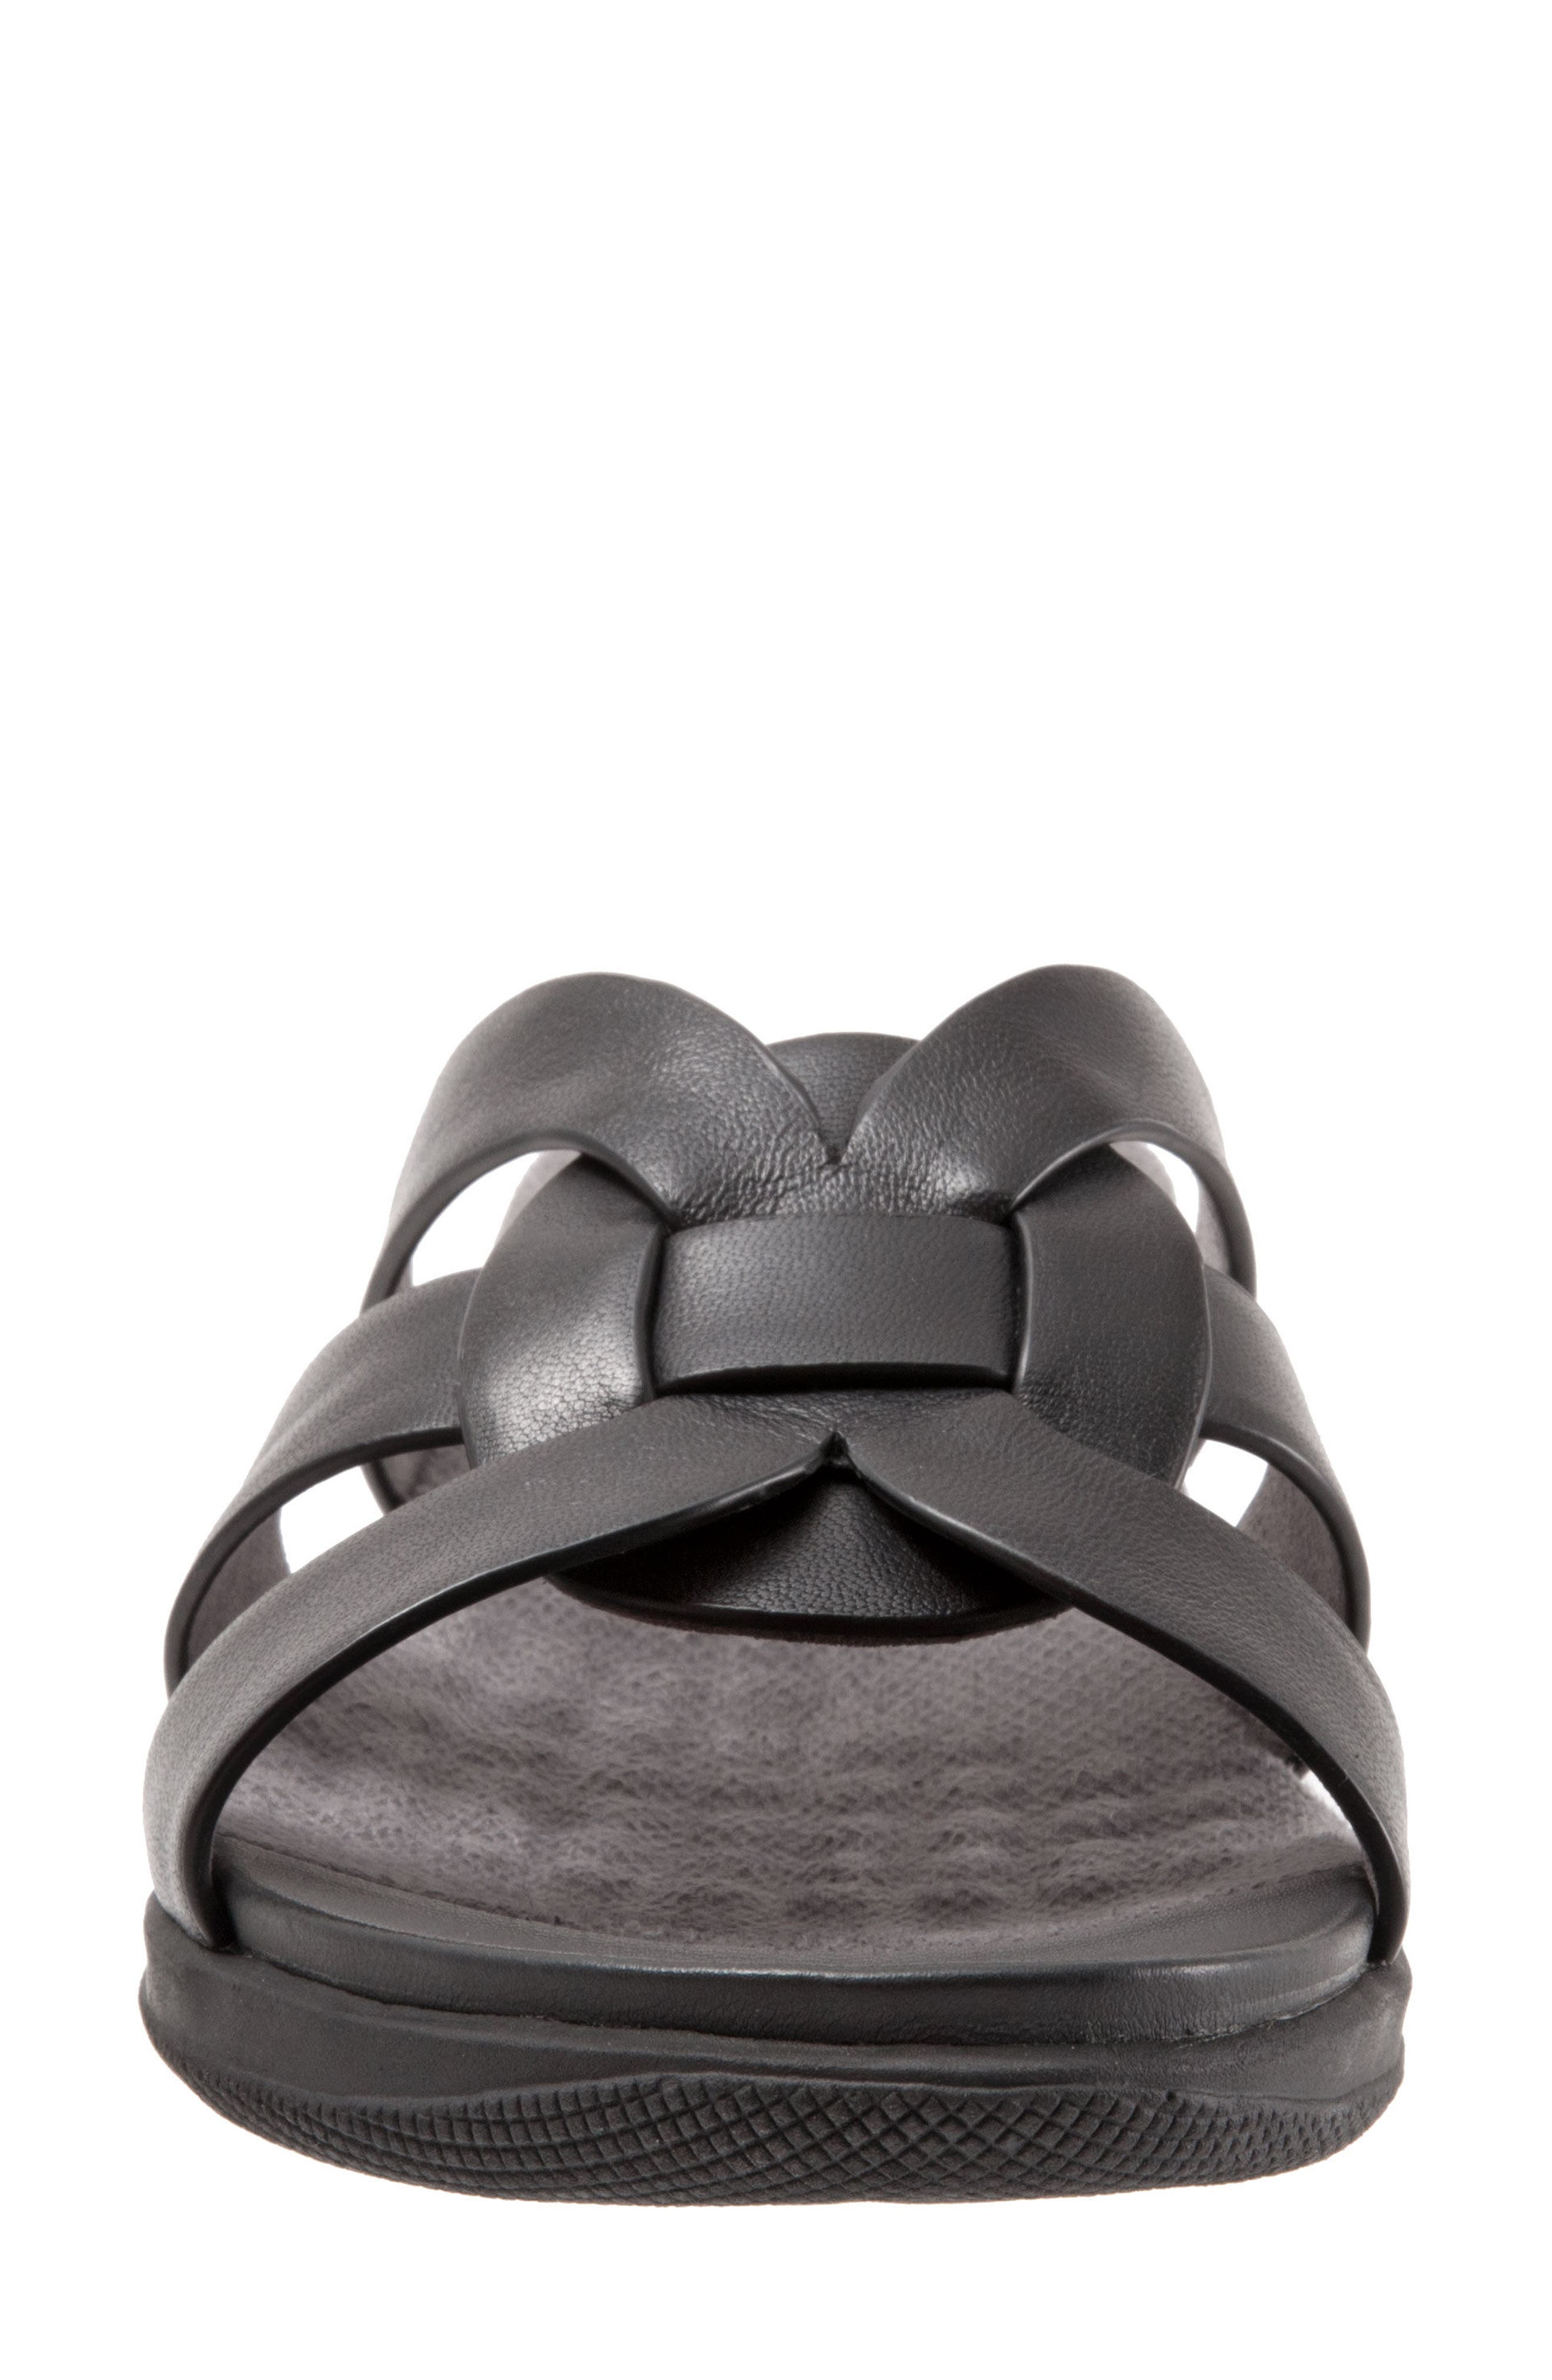 Thompson Slide Sandal,                             Alternate thumbnail 4, color,                             001